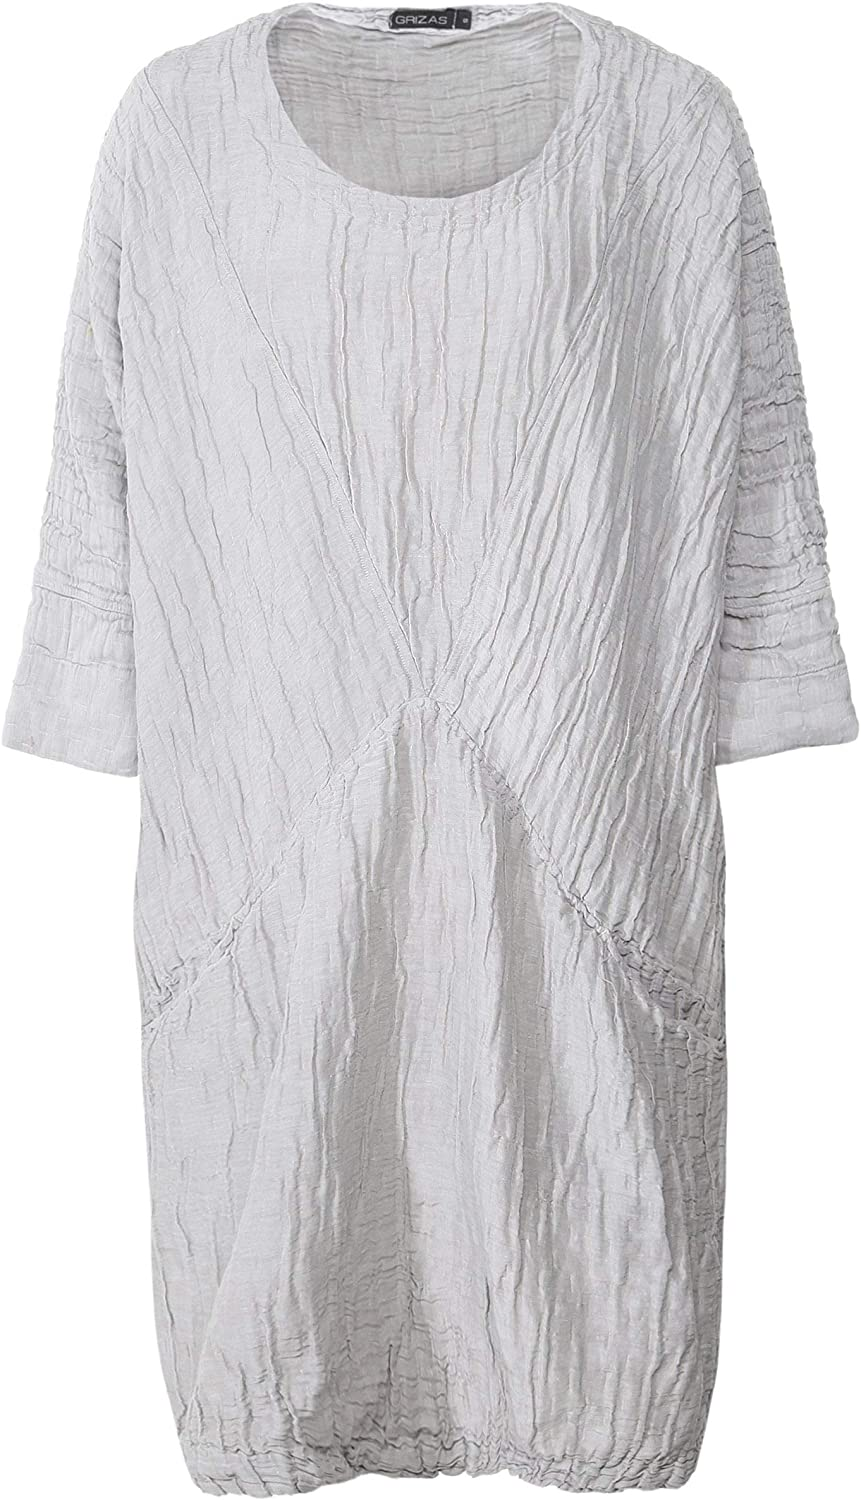 Grizas Women's Linen and Silk Blend Crinkled Tunic Beige